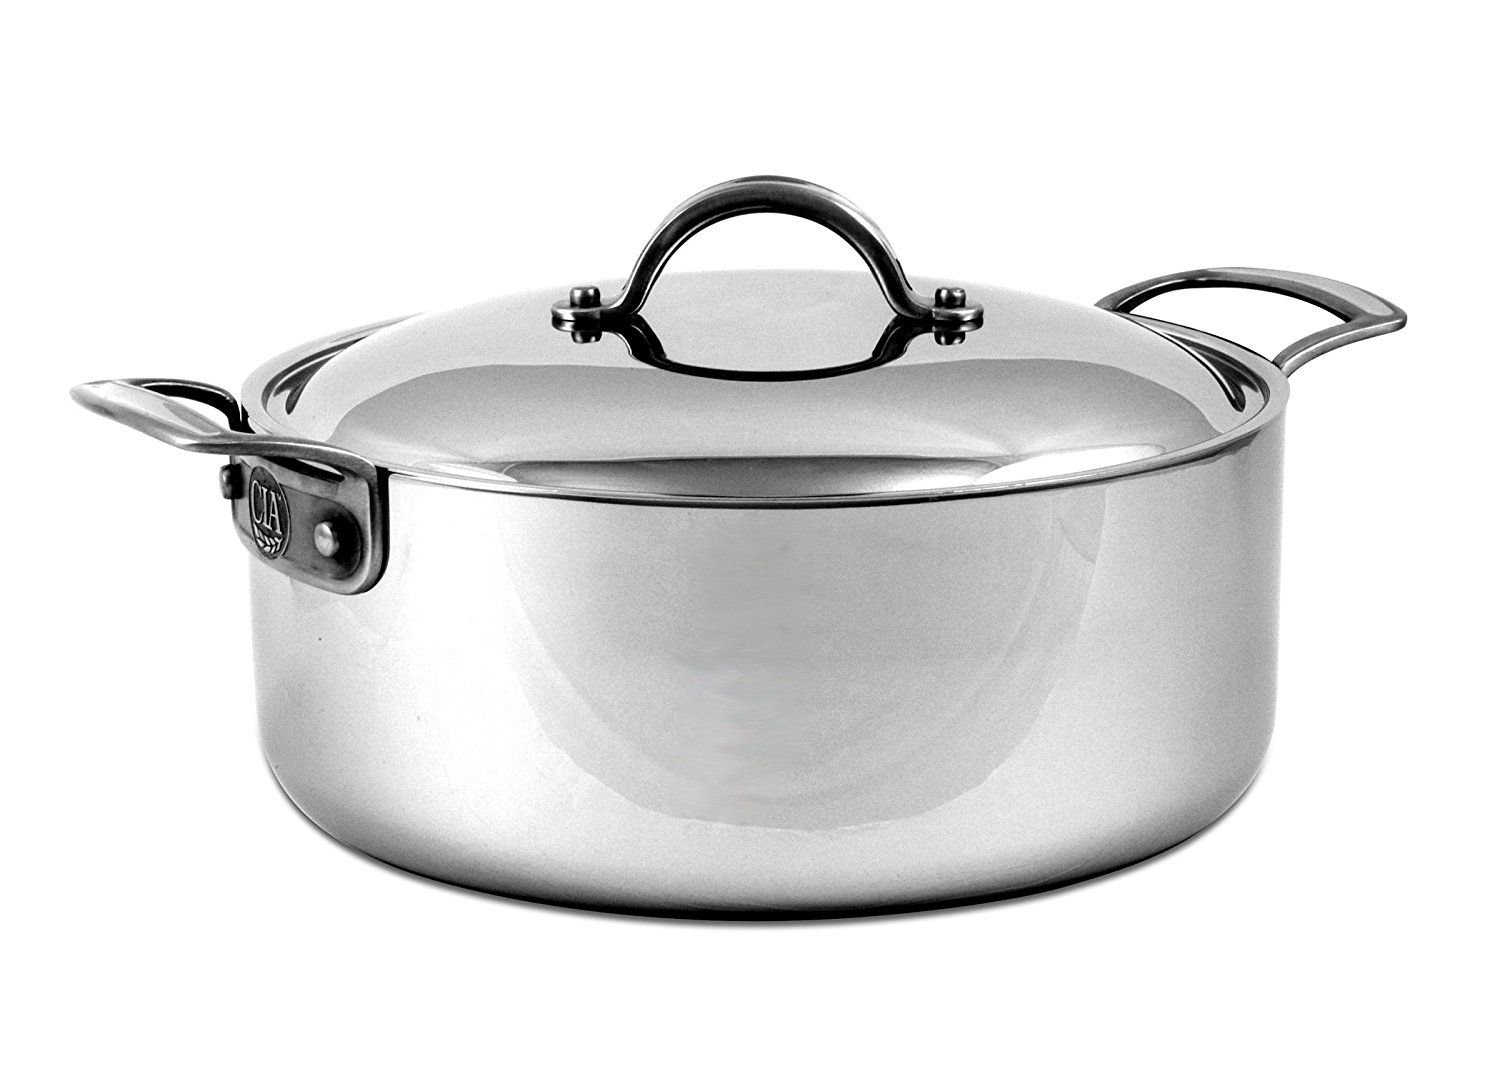 What Is a Rondeau Pan Used For?